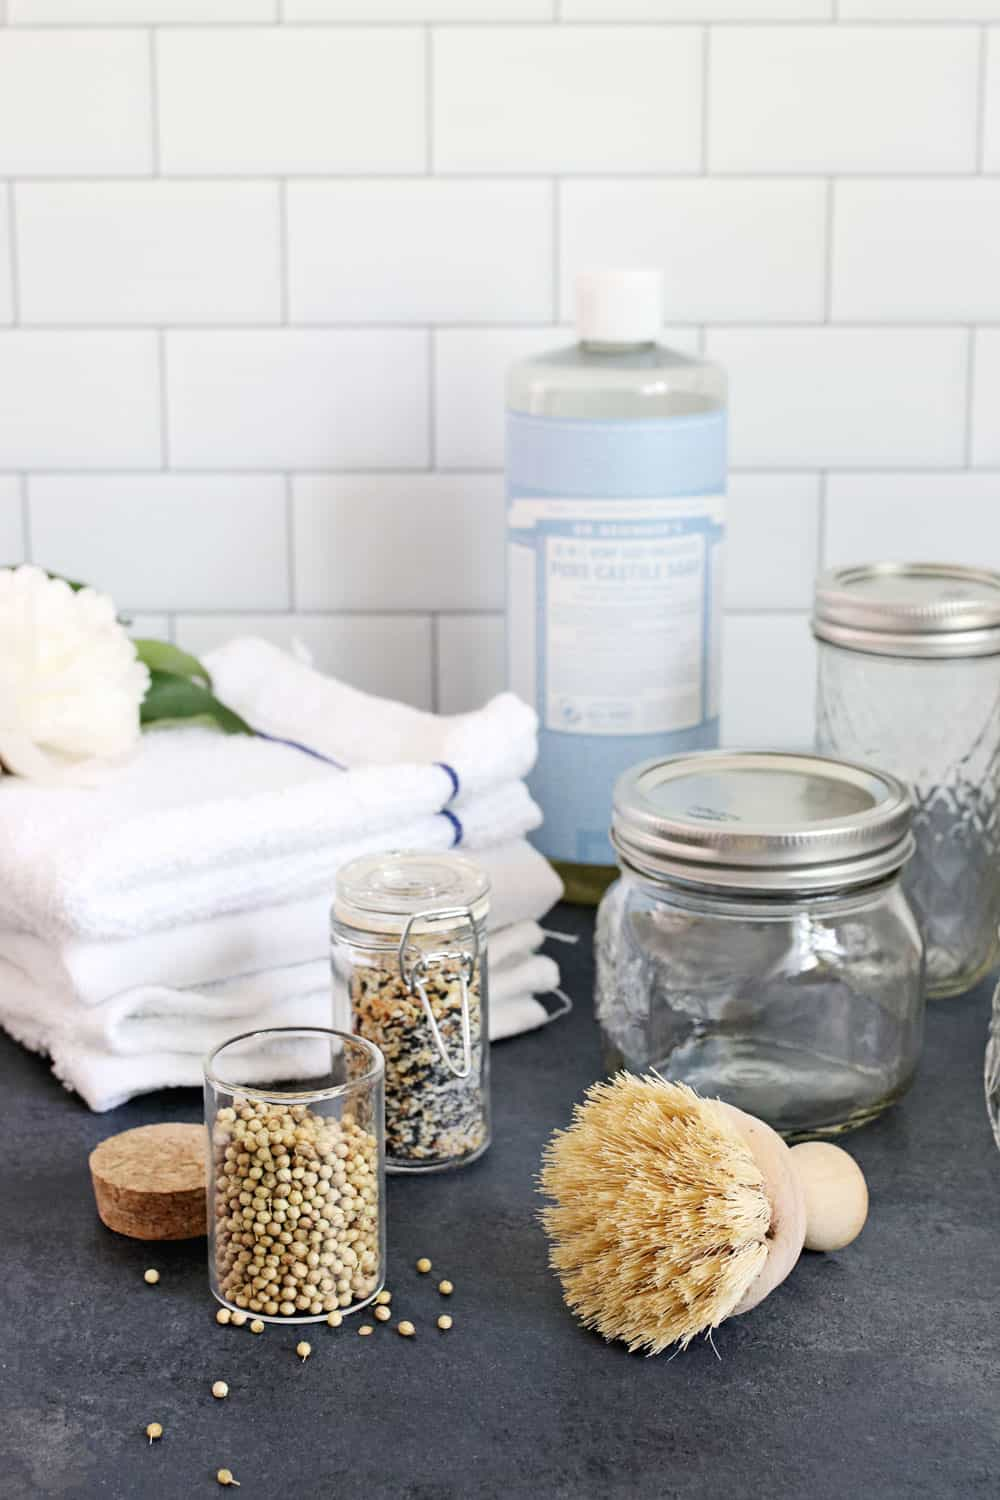 Zero waste kitchen swaps | How To Start Going Zero Waste